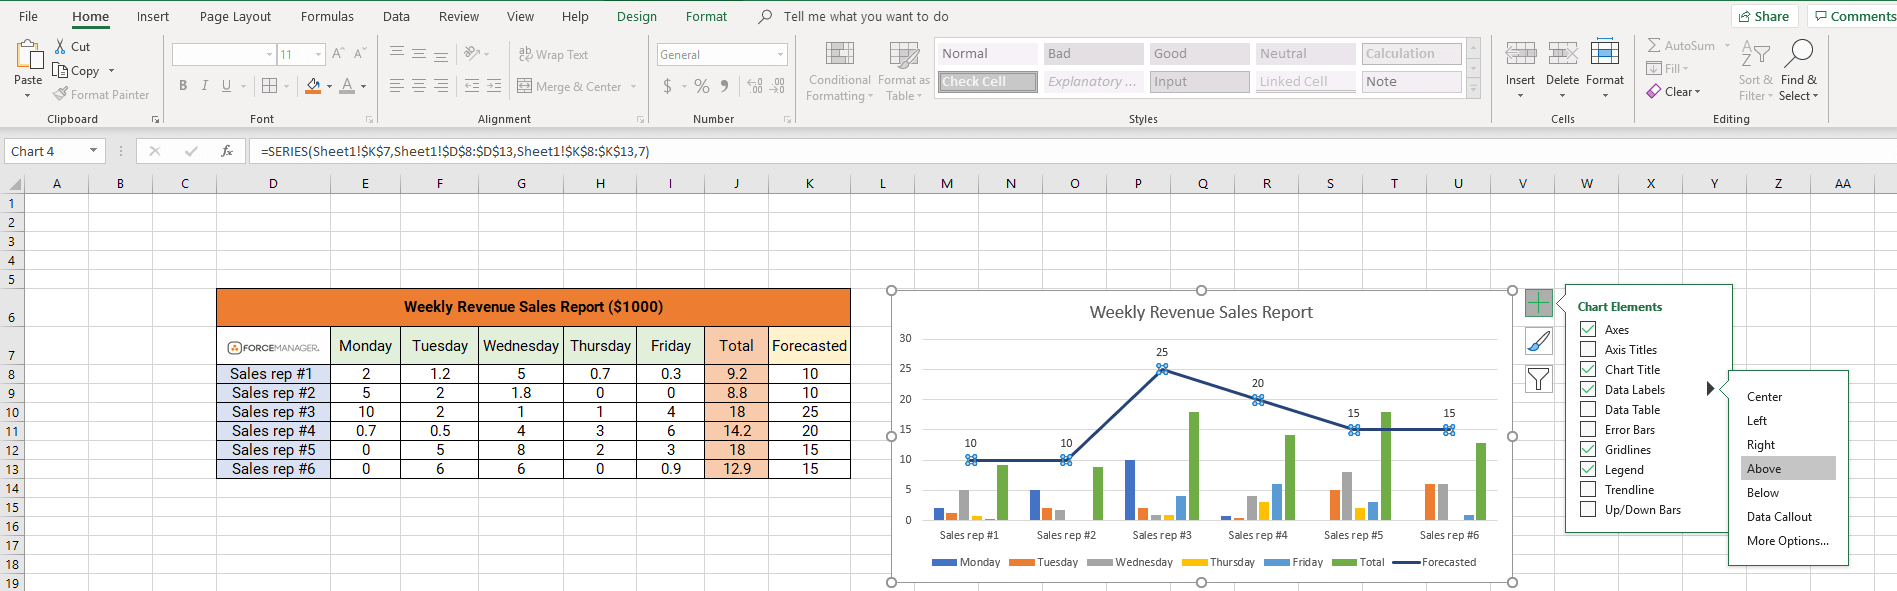 How to Make a Sales Report in Excel: The Pros and Cons